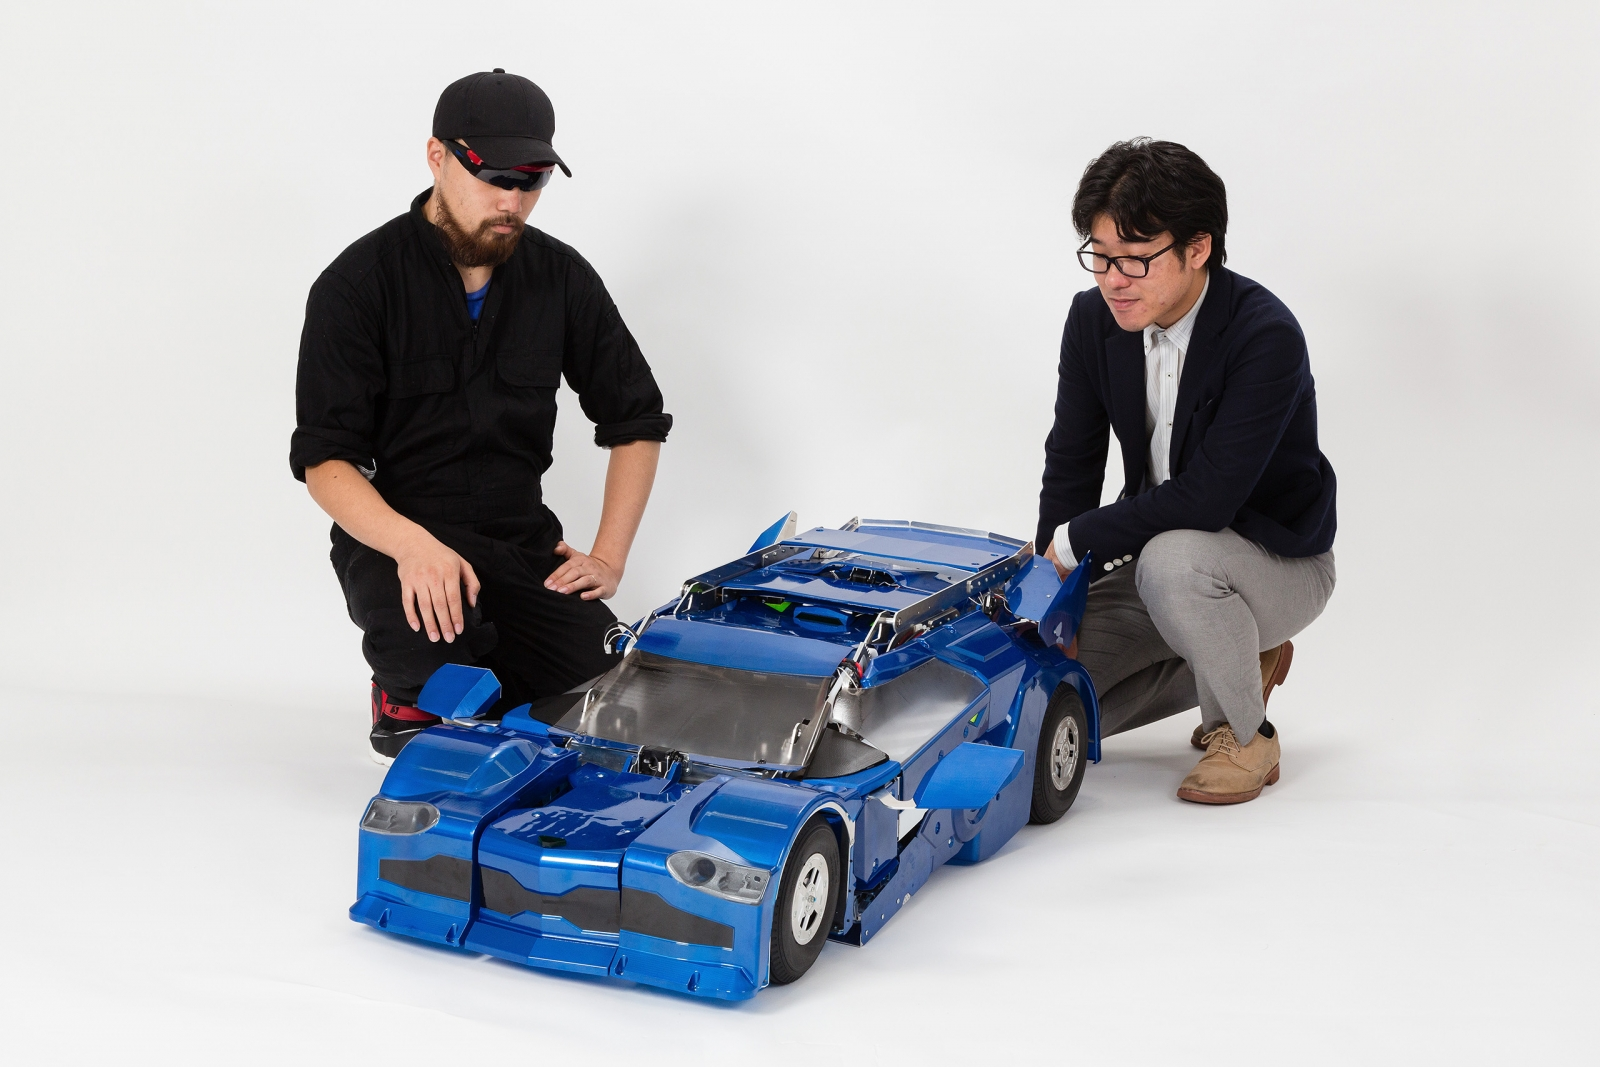 Kenji Ishida of Brave Robotics (left) and Wataru Yoshizaki (right) of Asratec Corp with the J-deite Quarter in its car mode